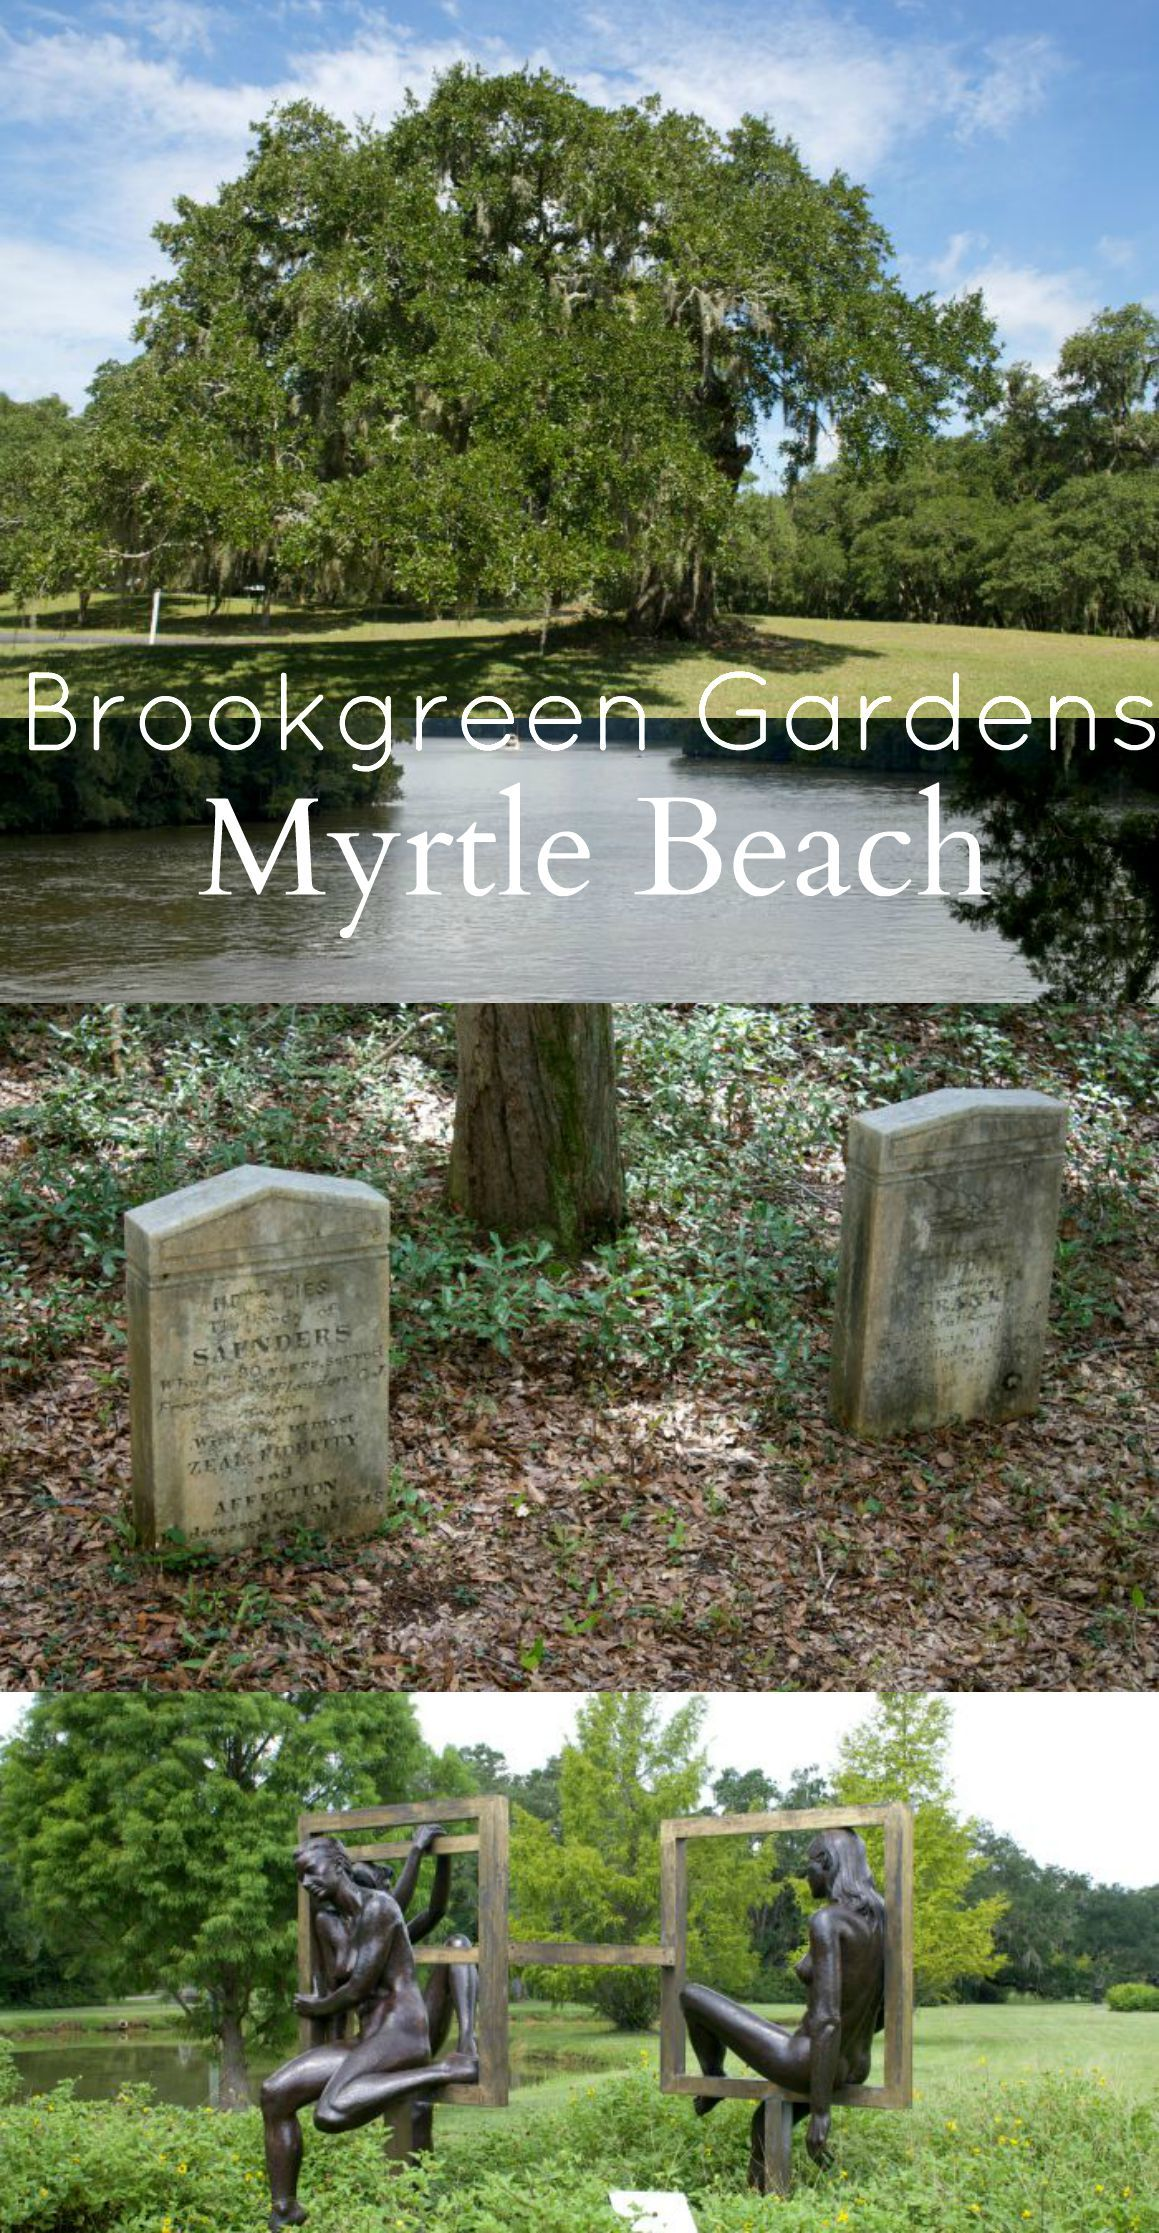 Myrtle Beach Attractions: Brookgreen Gardens | South carolina ...